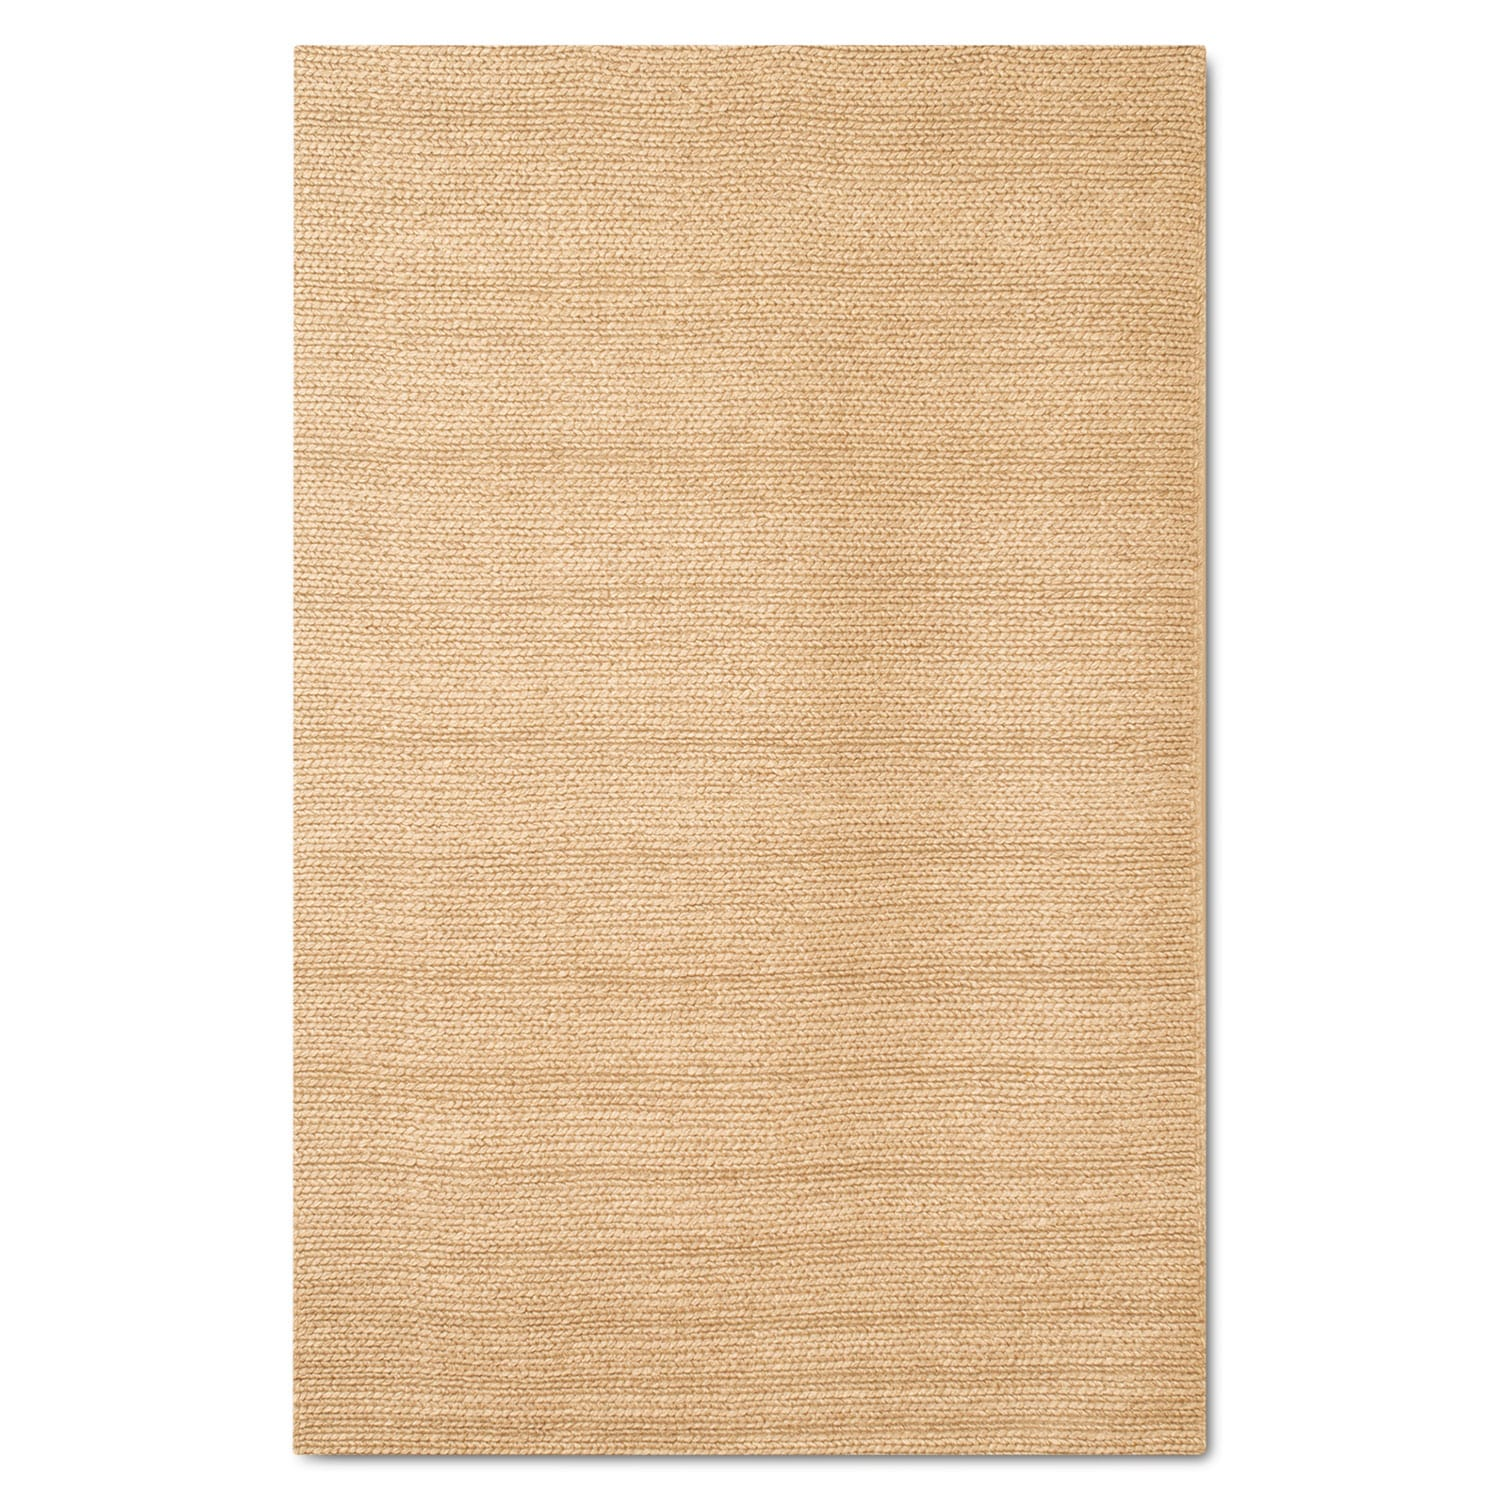 Rugs - Pixley 5' x 8' Area Rug - Tan